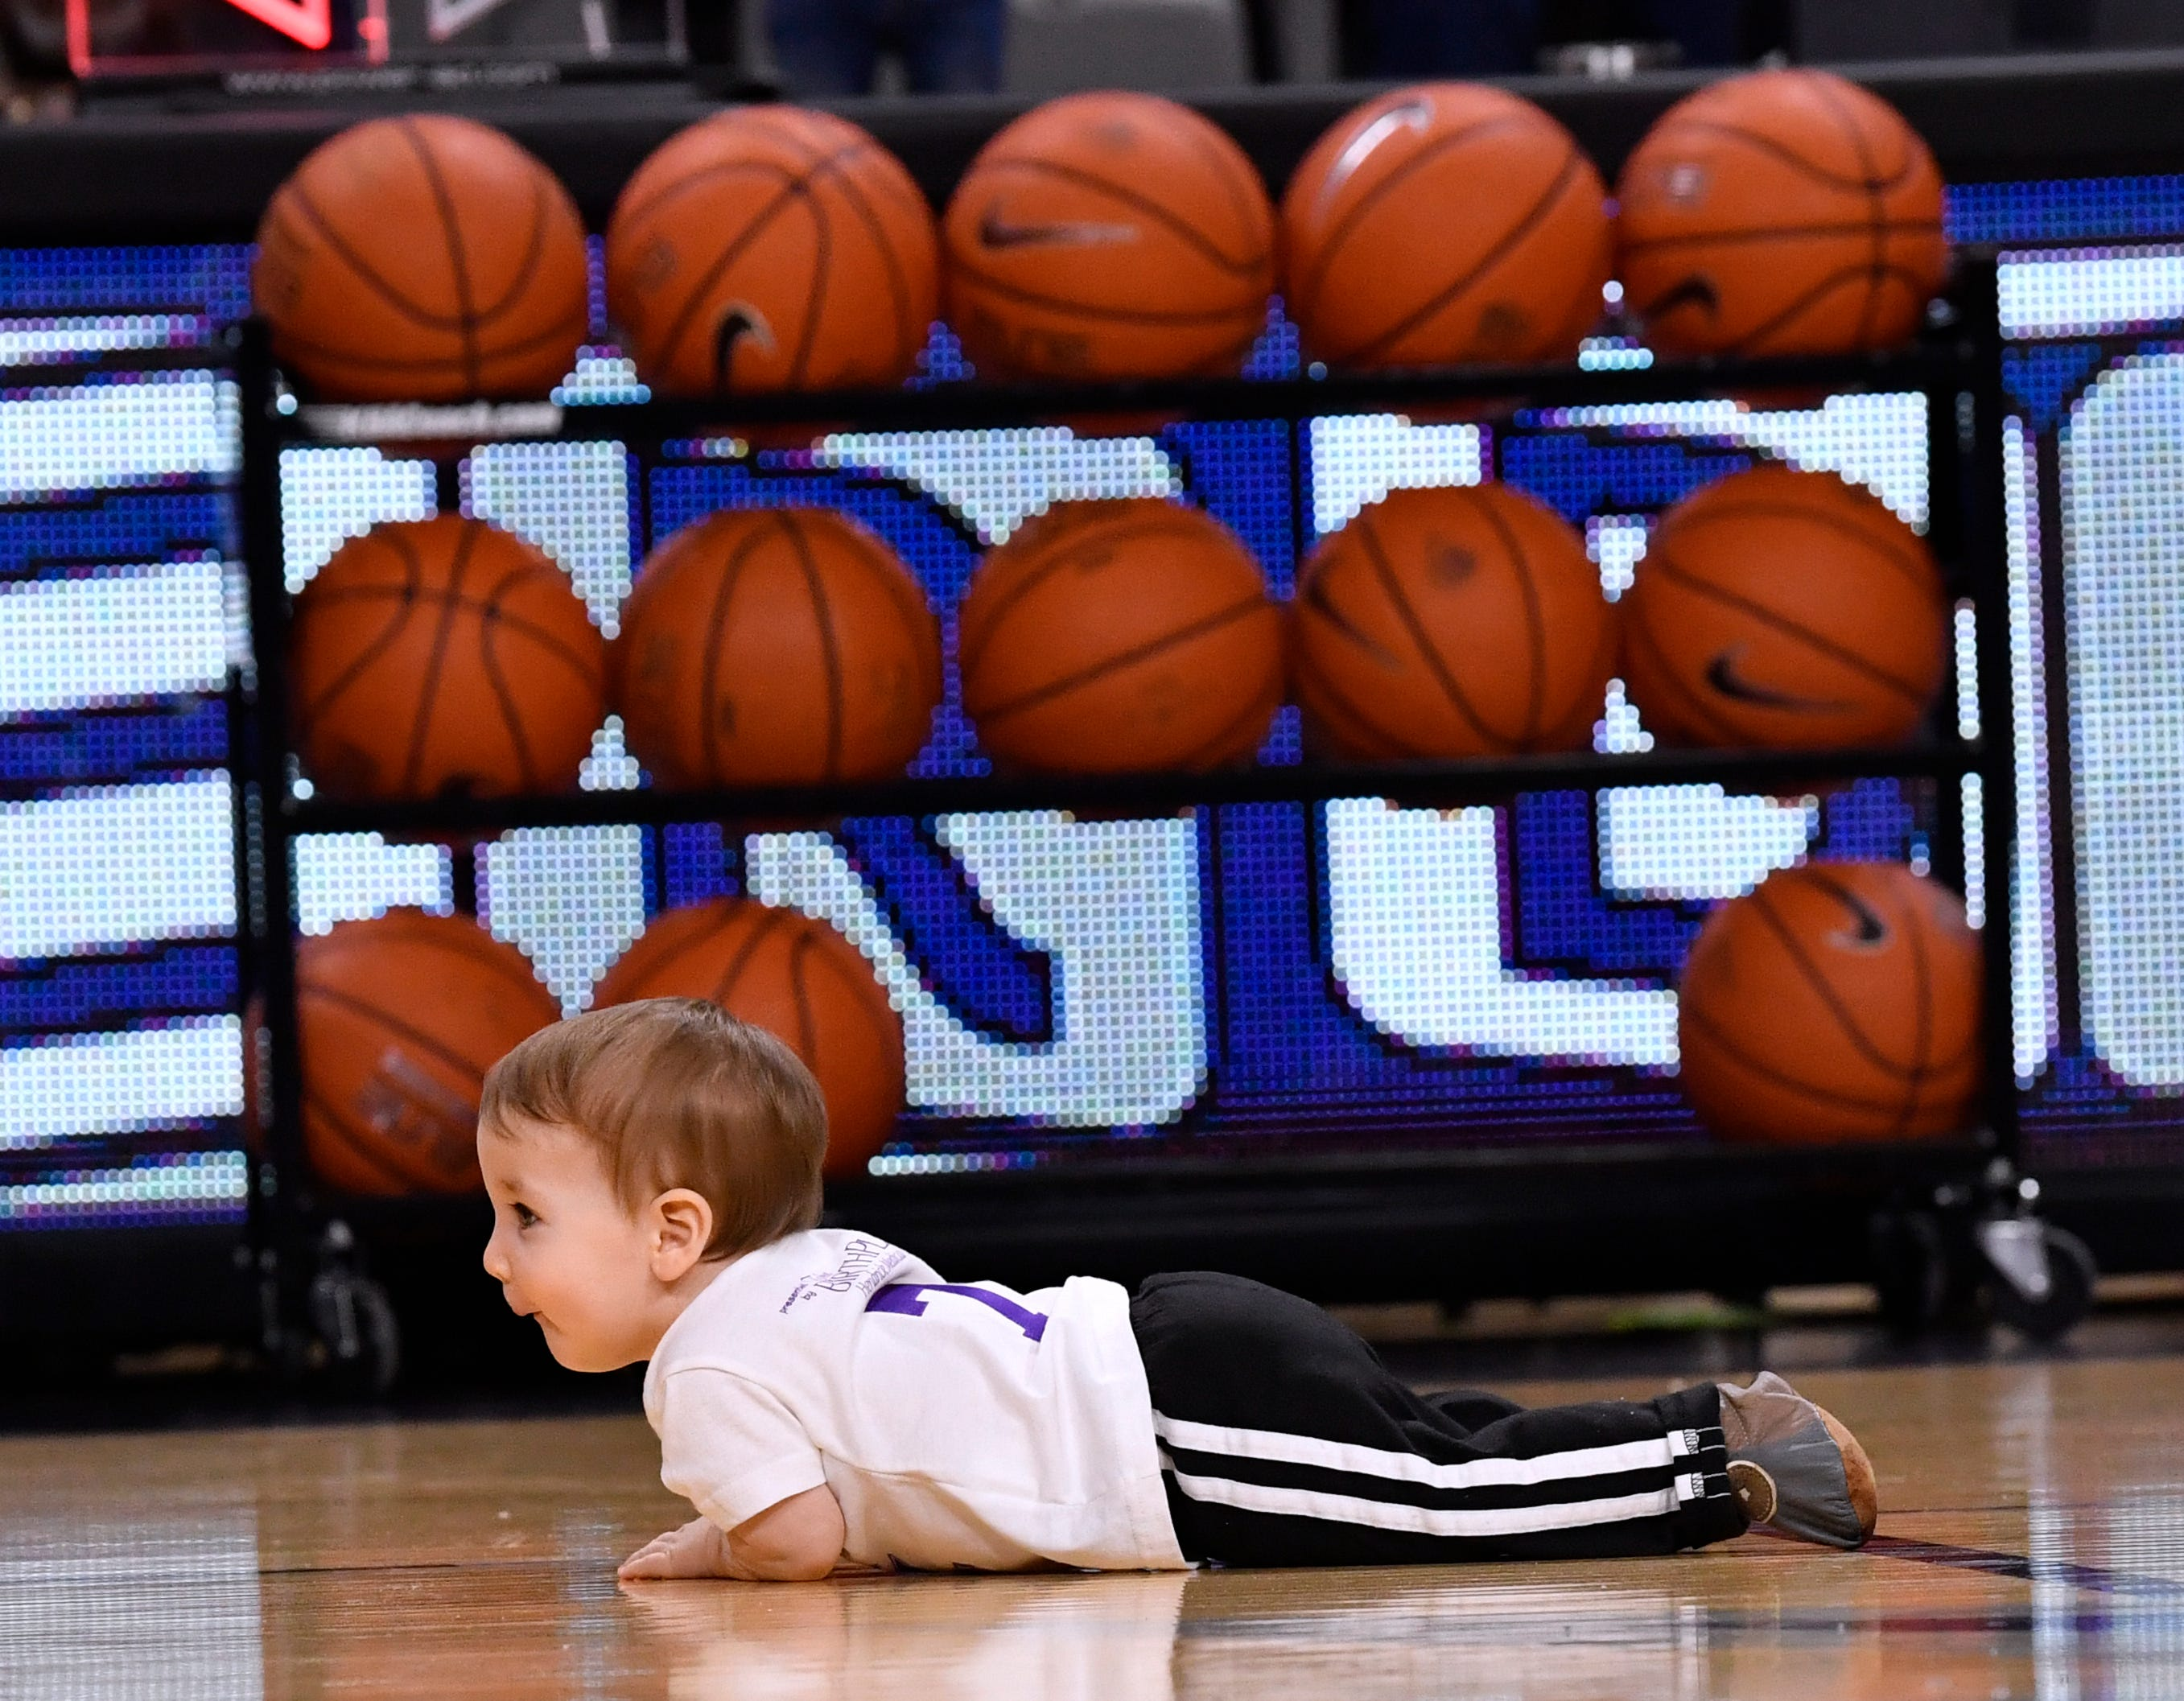 """Logan Macaluso paused to """"plank"""" in the middle of the court at Moody Coliseum before continuing on to his mother Suzie."""